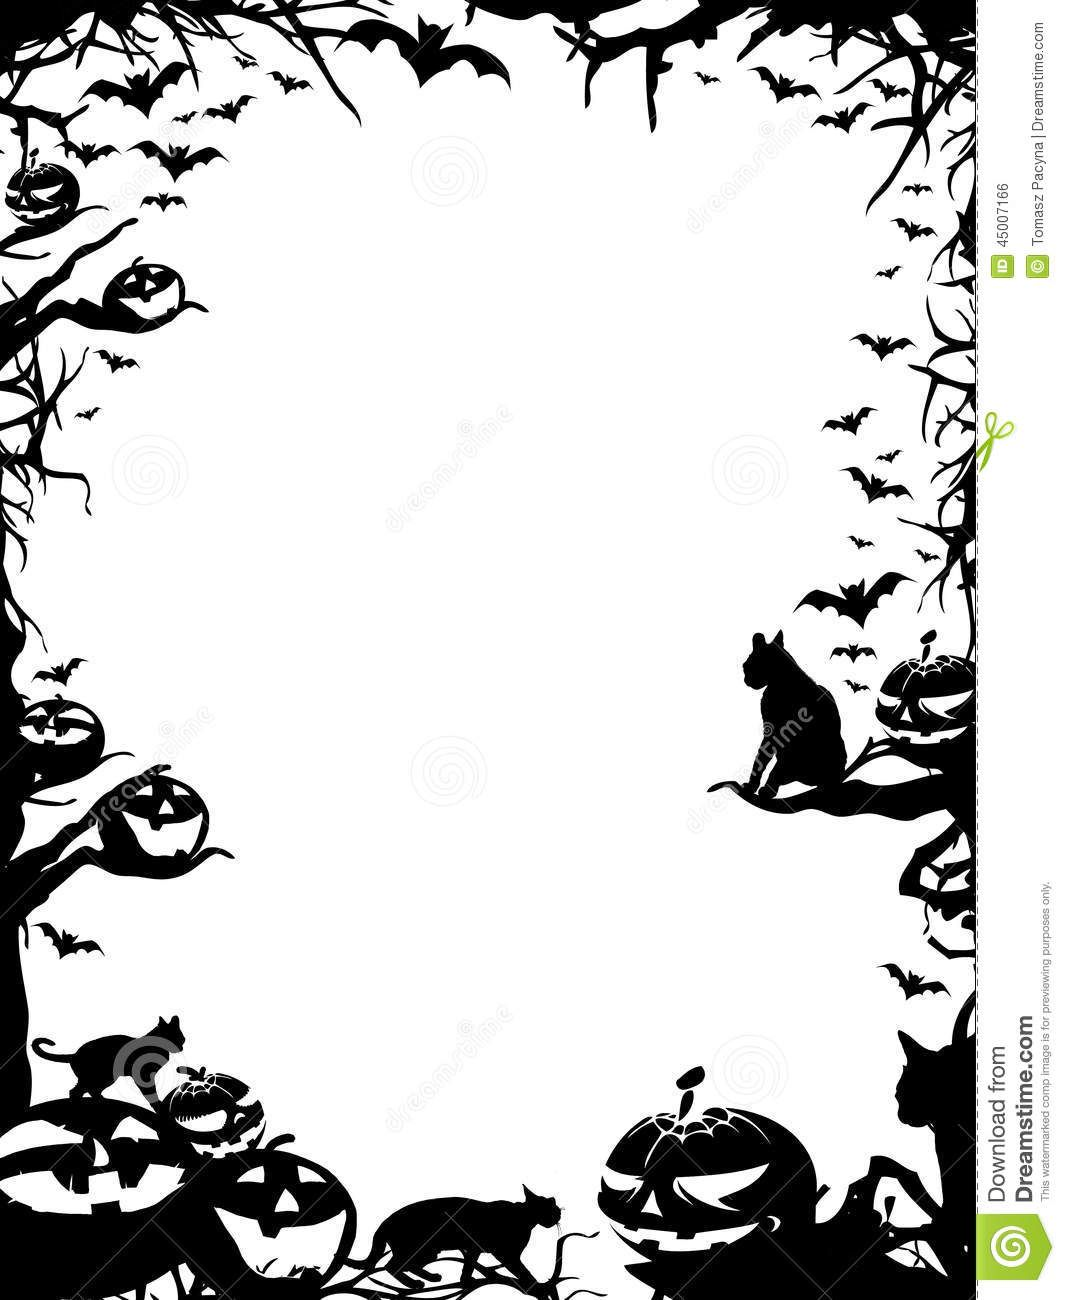 black and white halloween borders 6 jeepers creepers